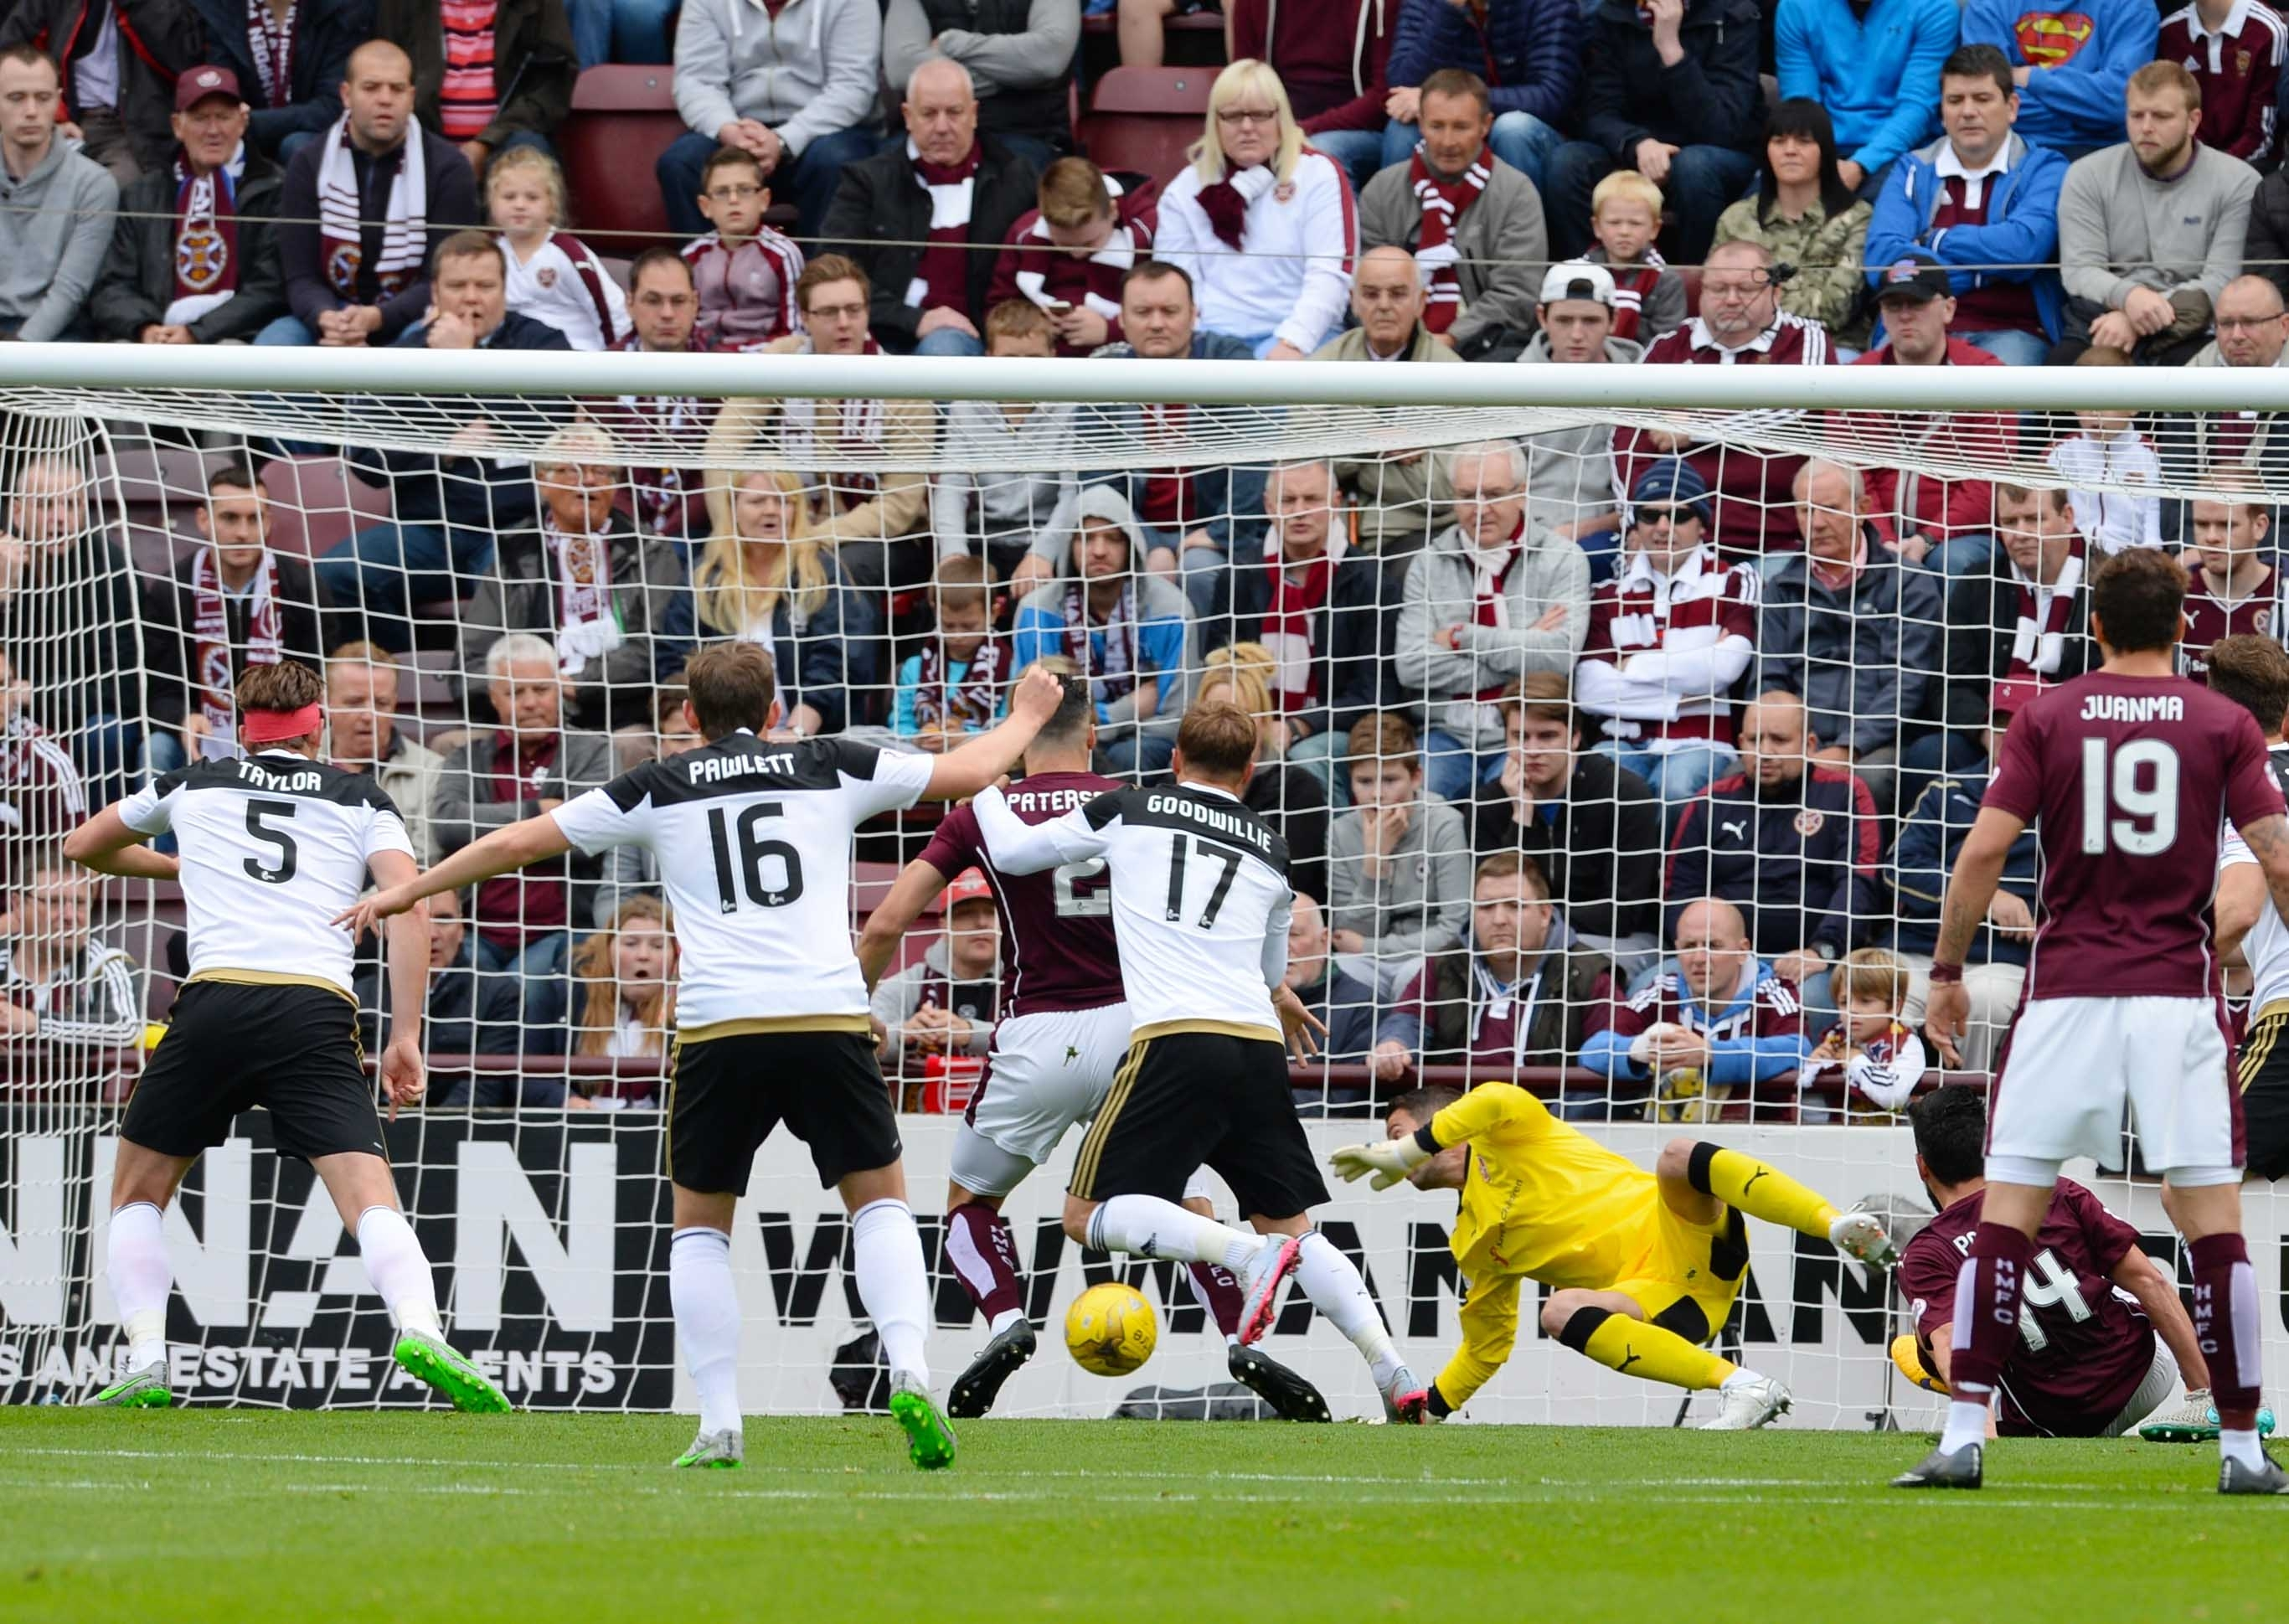 The Dons won 3-1 against Hearts at Tynecastle earlier this season.